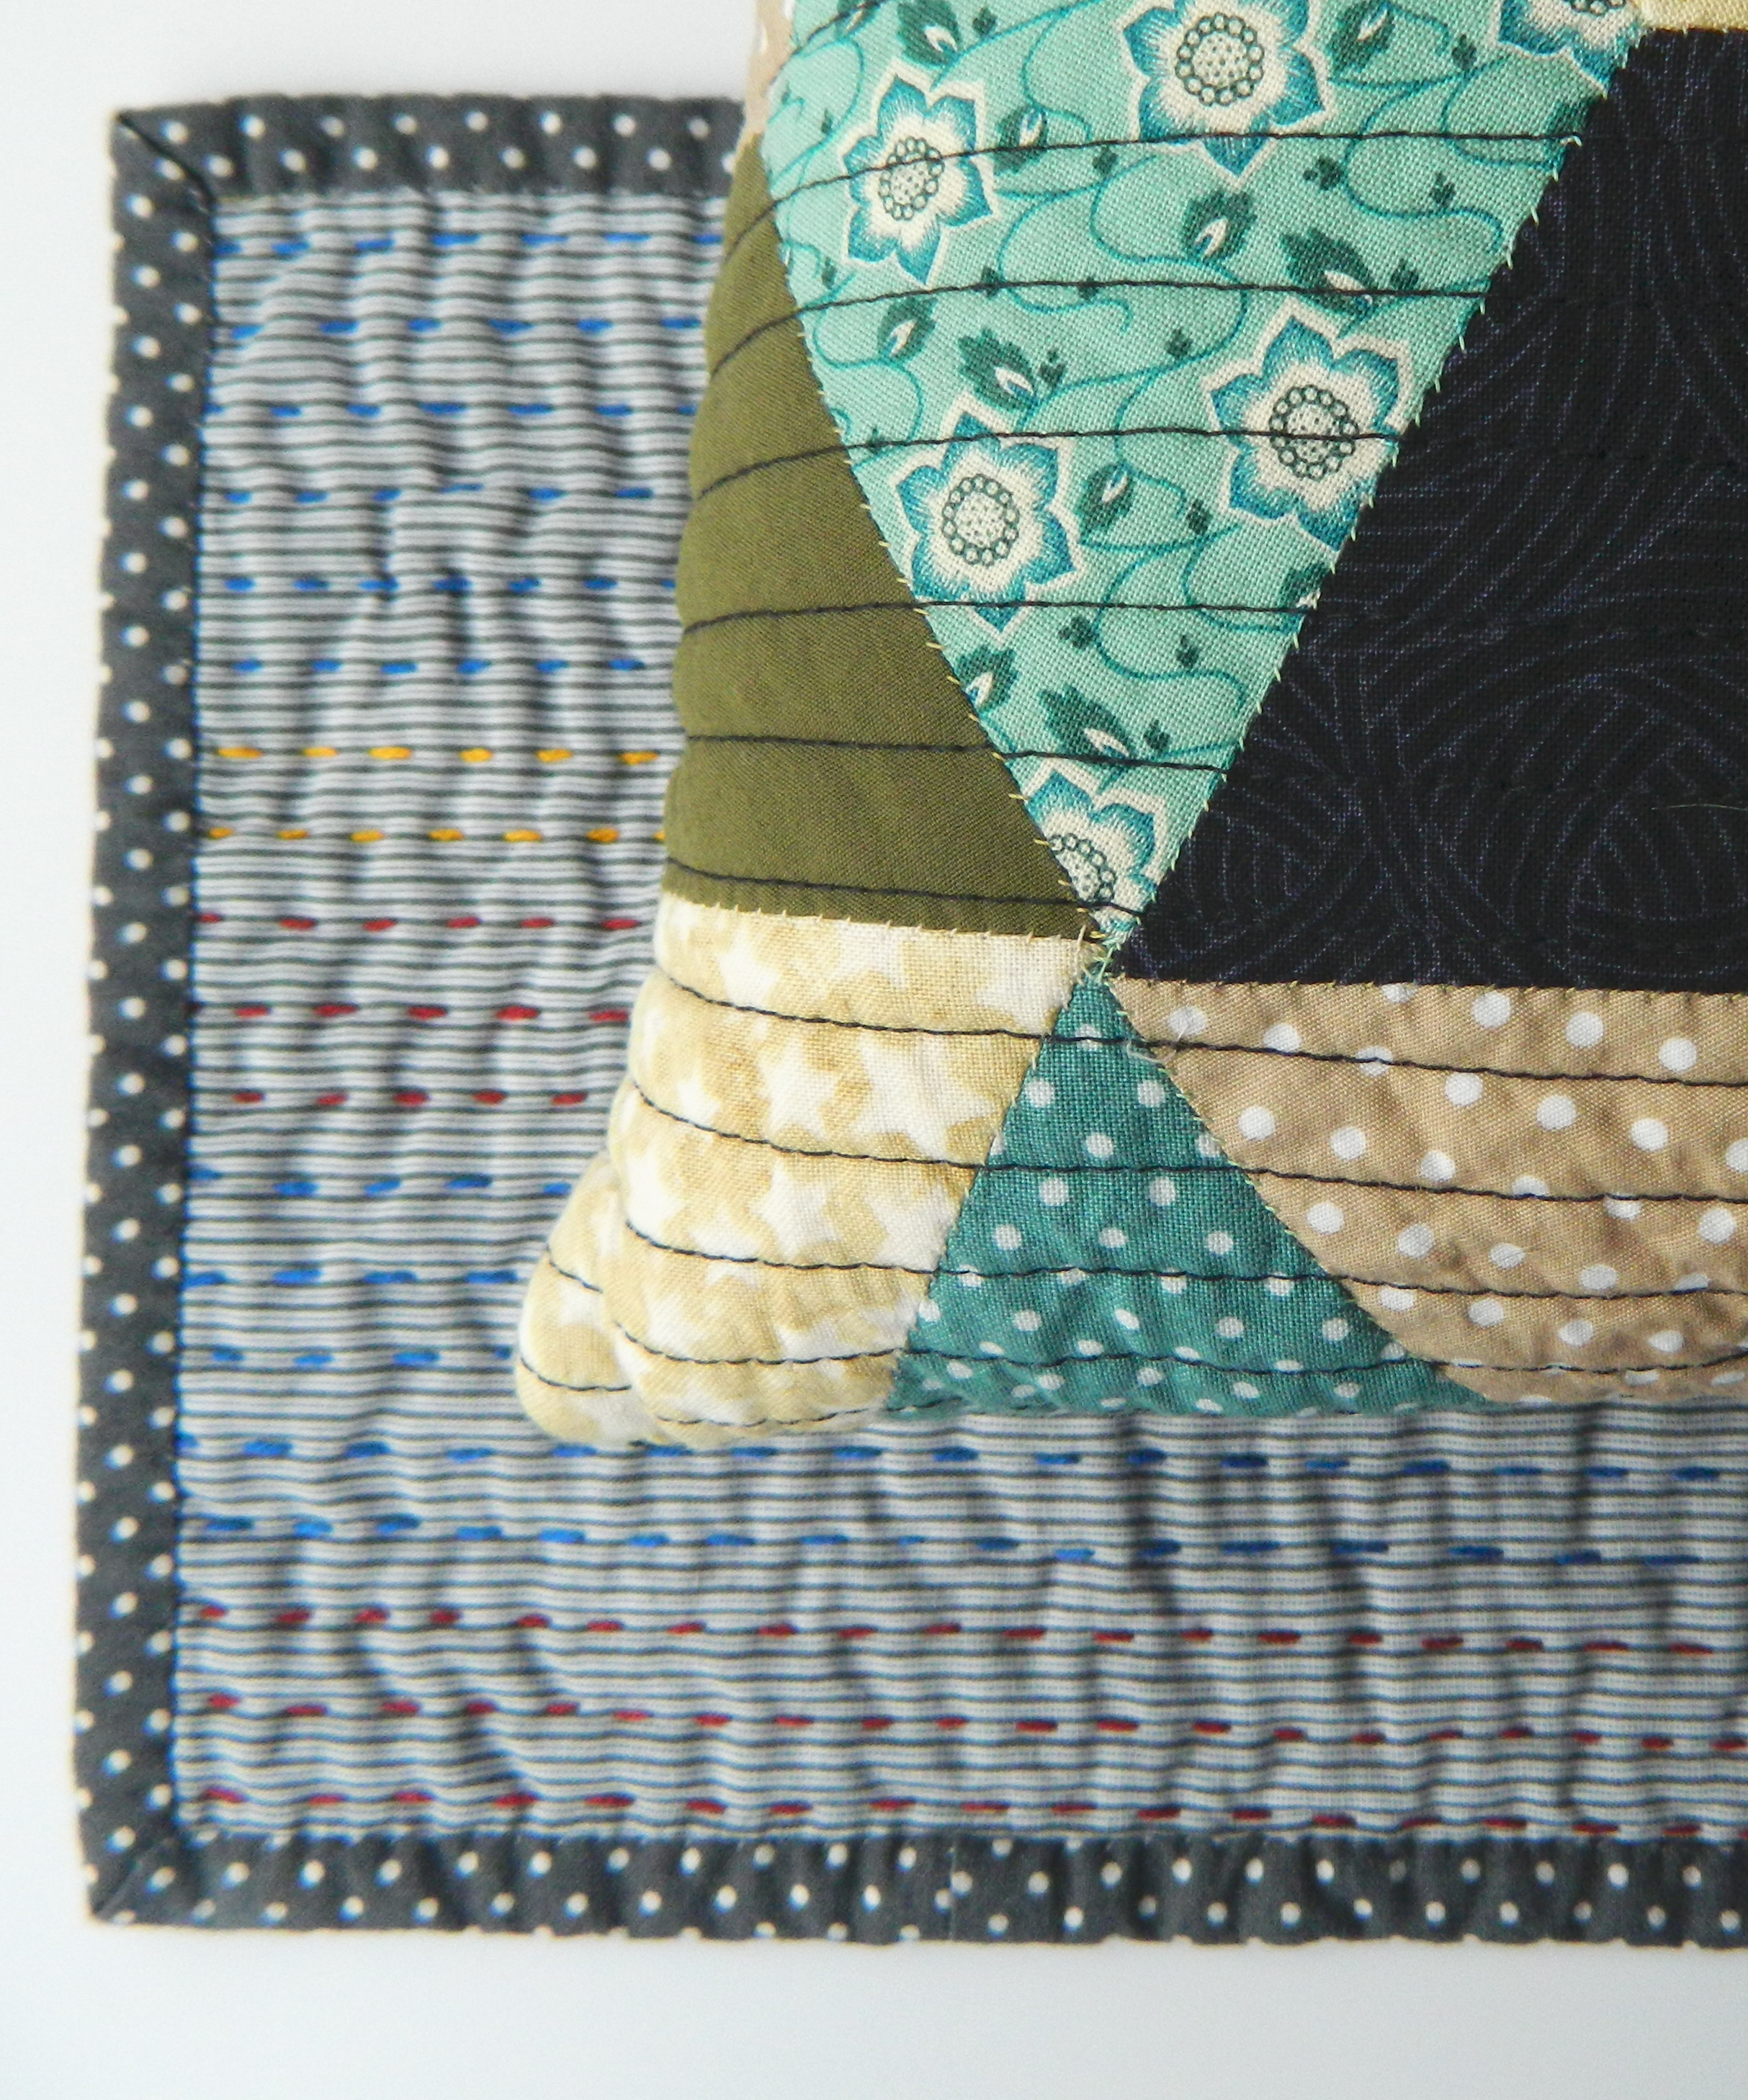 Linear Quilting by Hand and Machine